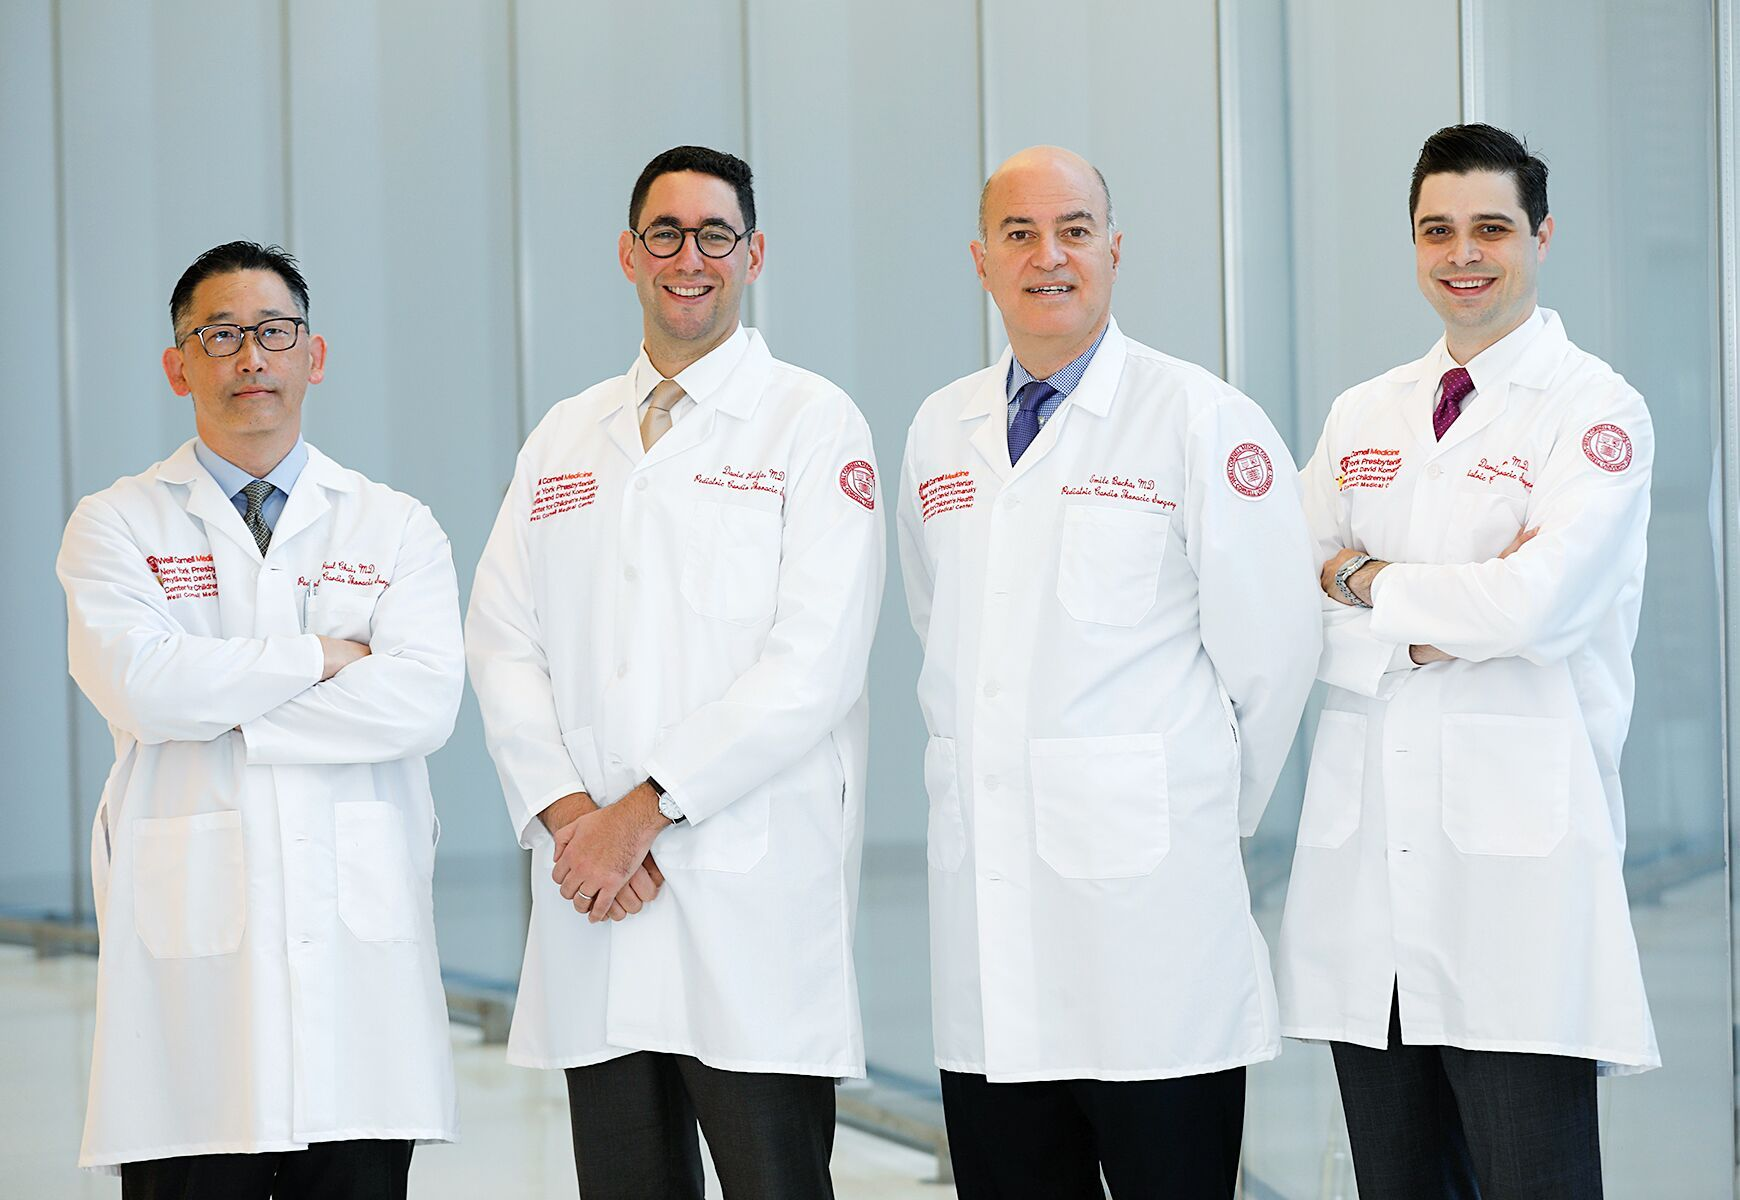 Team photo of pediatric cardiothoracic surgeons